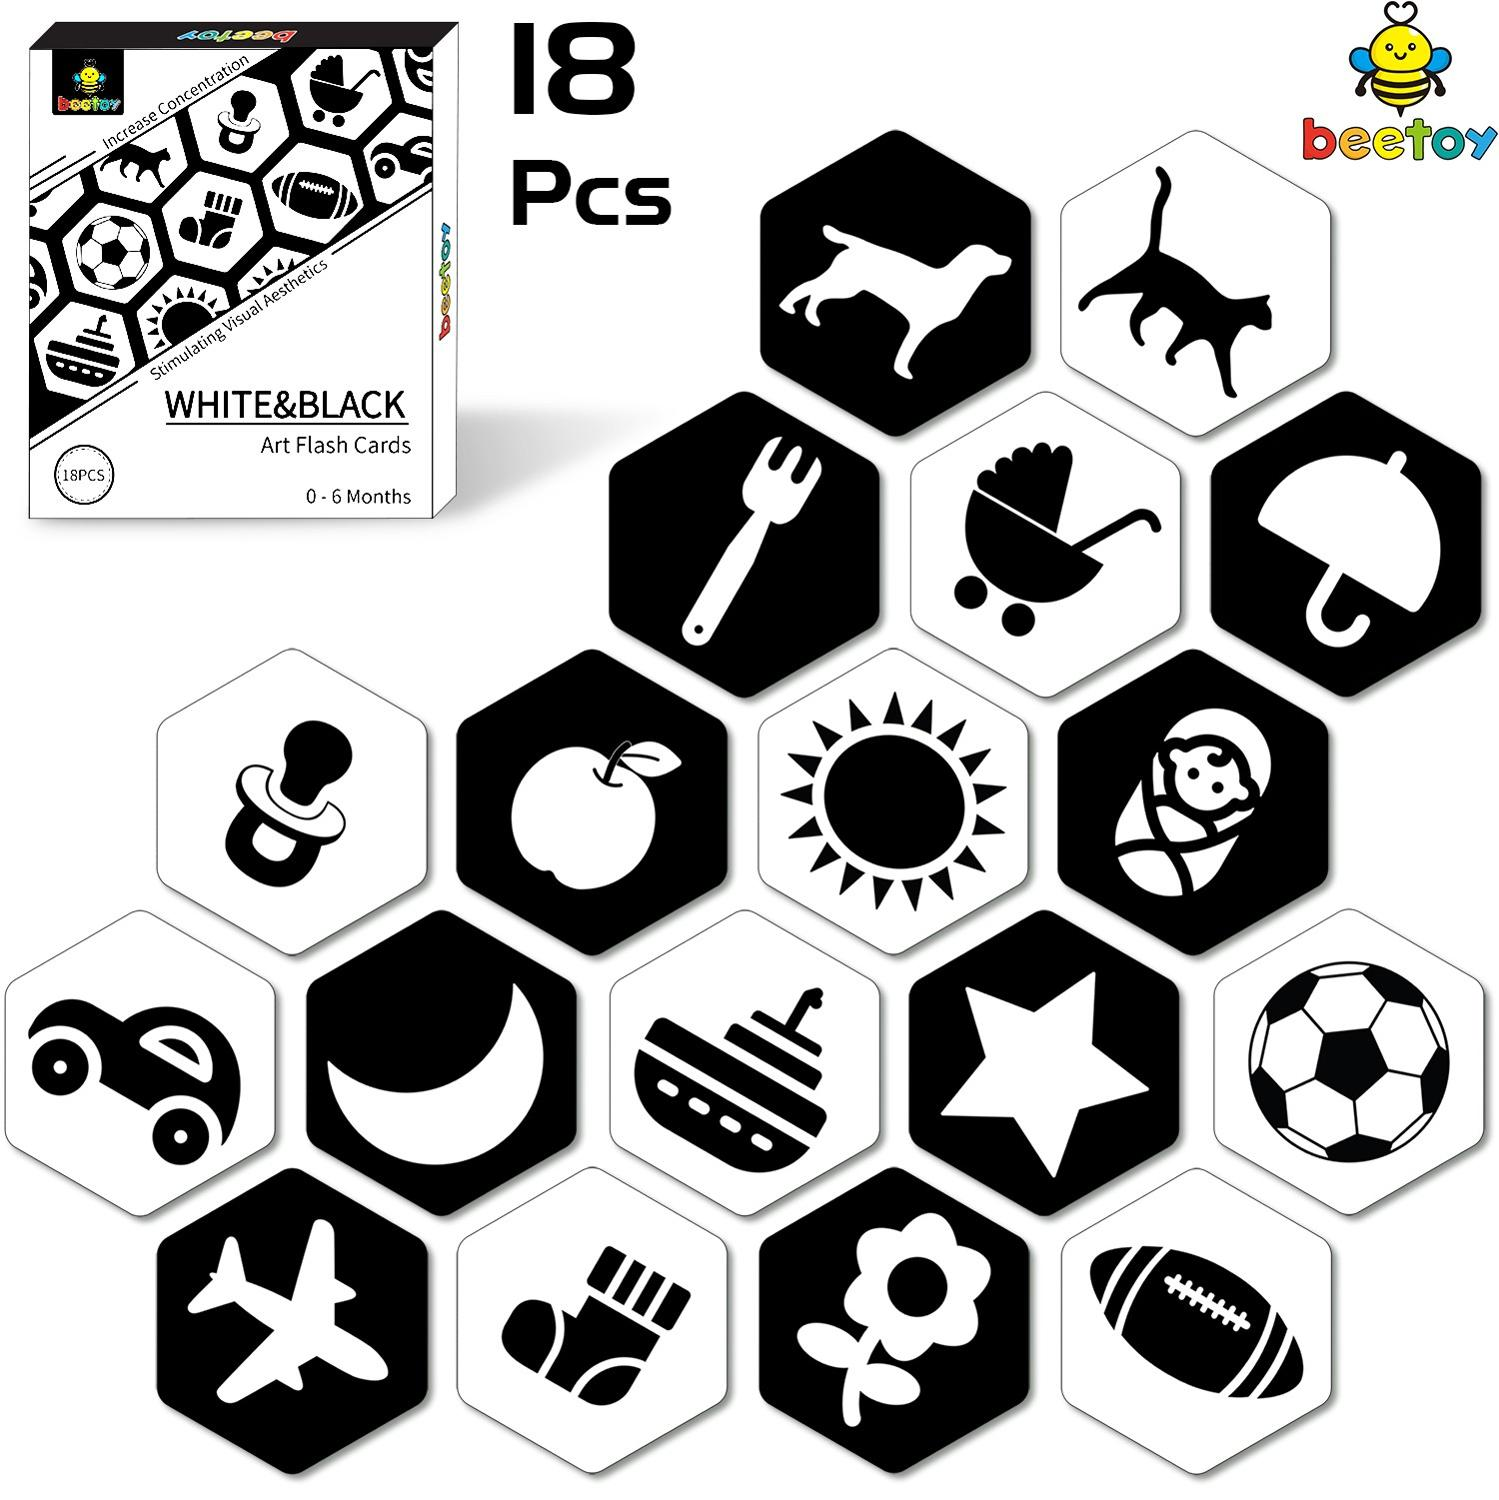 Beetoy Black White Flash Cards For Toddlers, 36 Pattern High Contrast Visual Stimulation Learning Kindergarten Flash Card